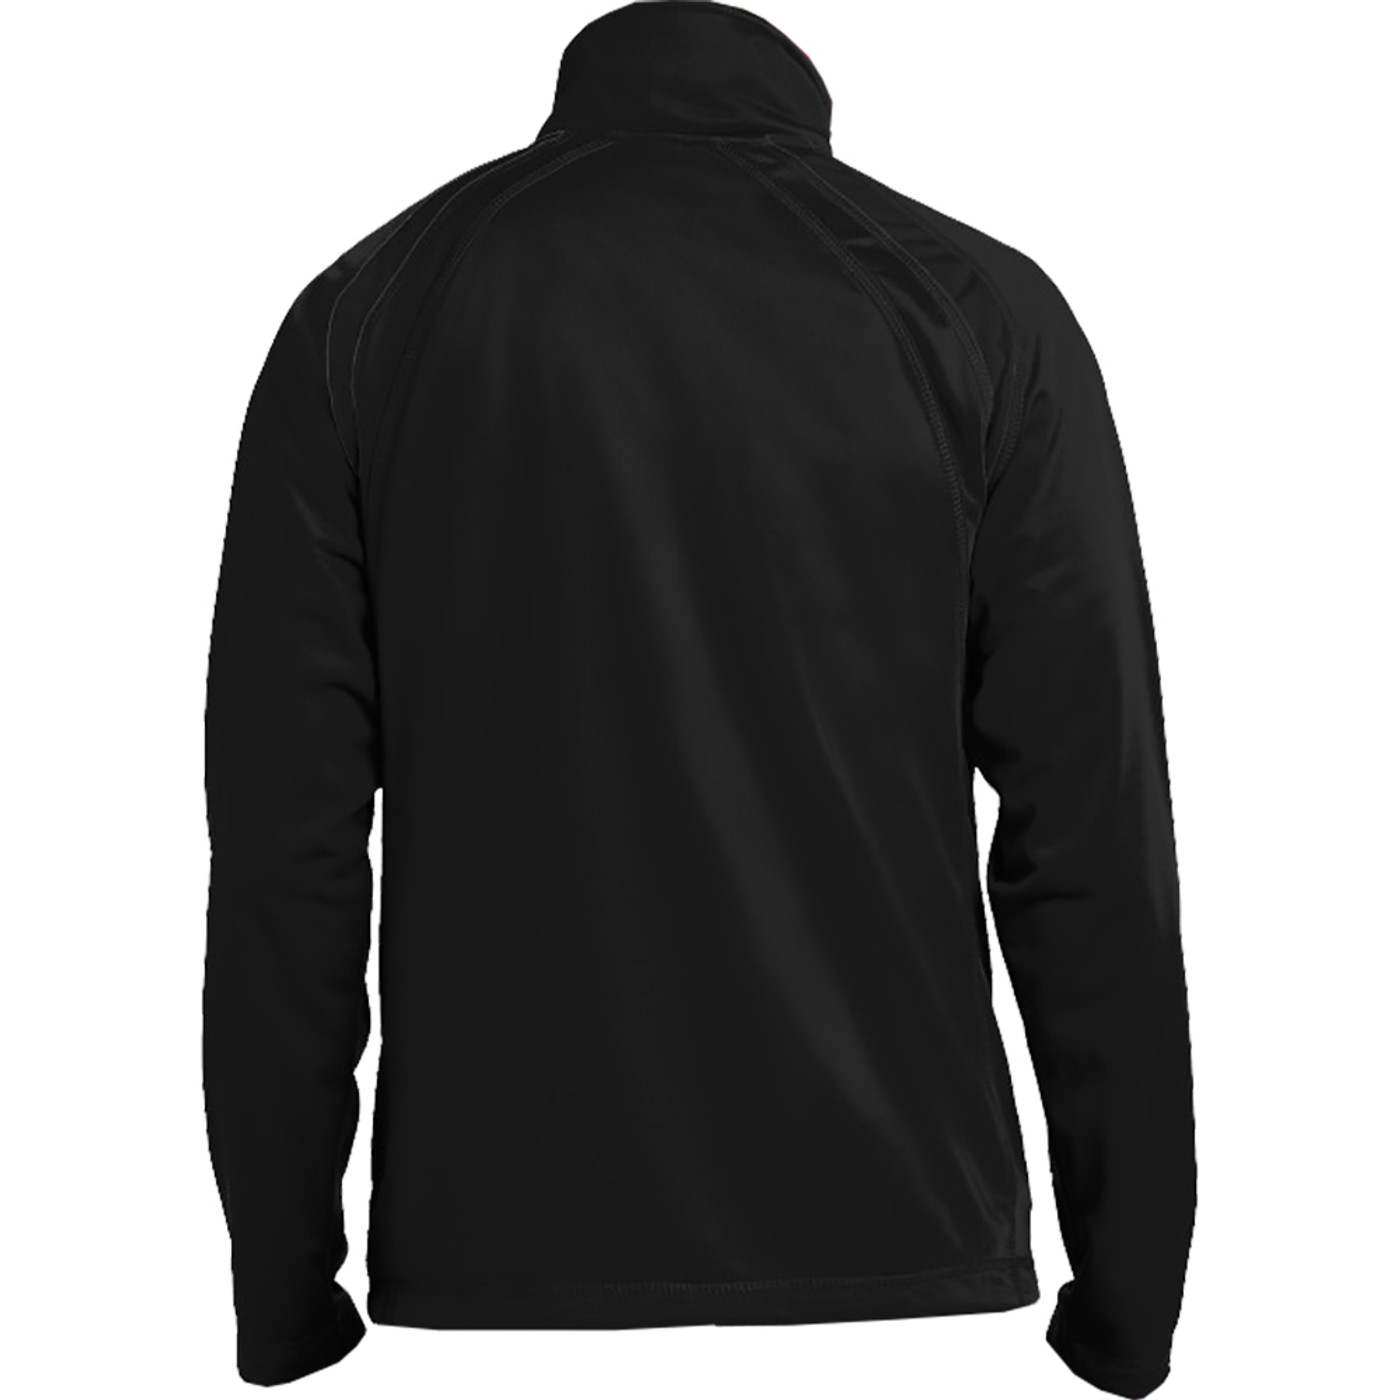 1189CL USSF 4th Official Jacket